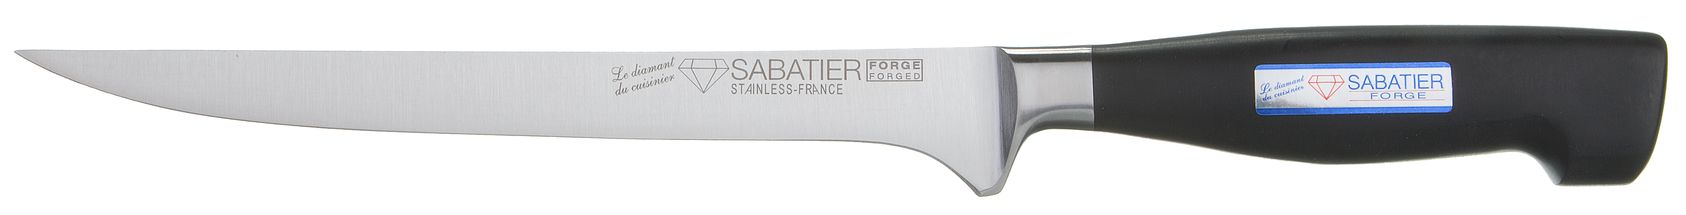 diamant_sabatier_fileermes_forge_18_cm.jpg